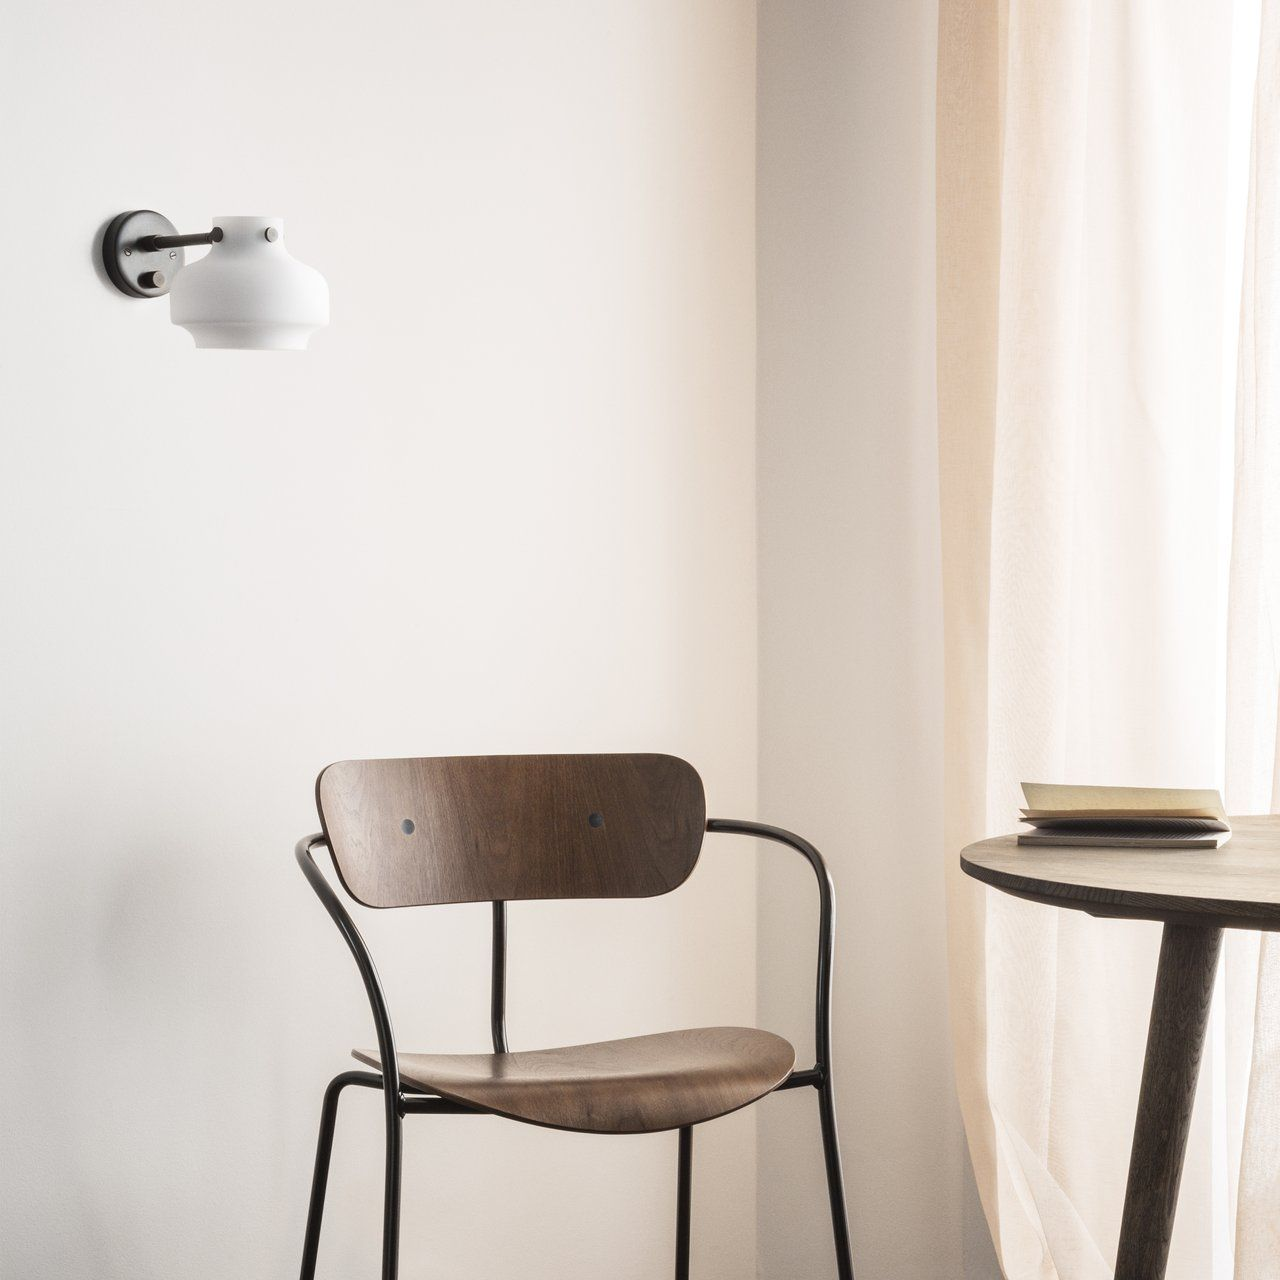 Copenhagen Sc16 Wall Lamp Buy Tradition Online At A R Wall Lamp Interior Furniture Design